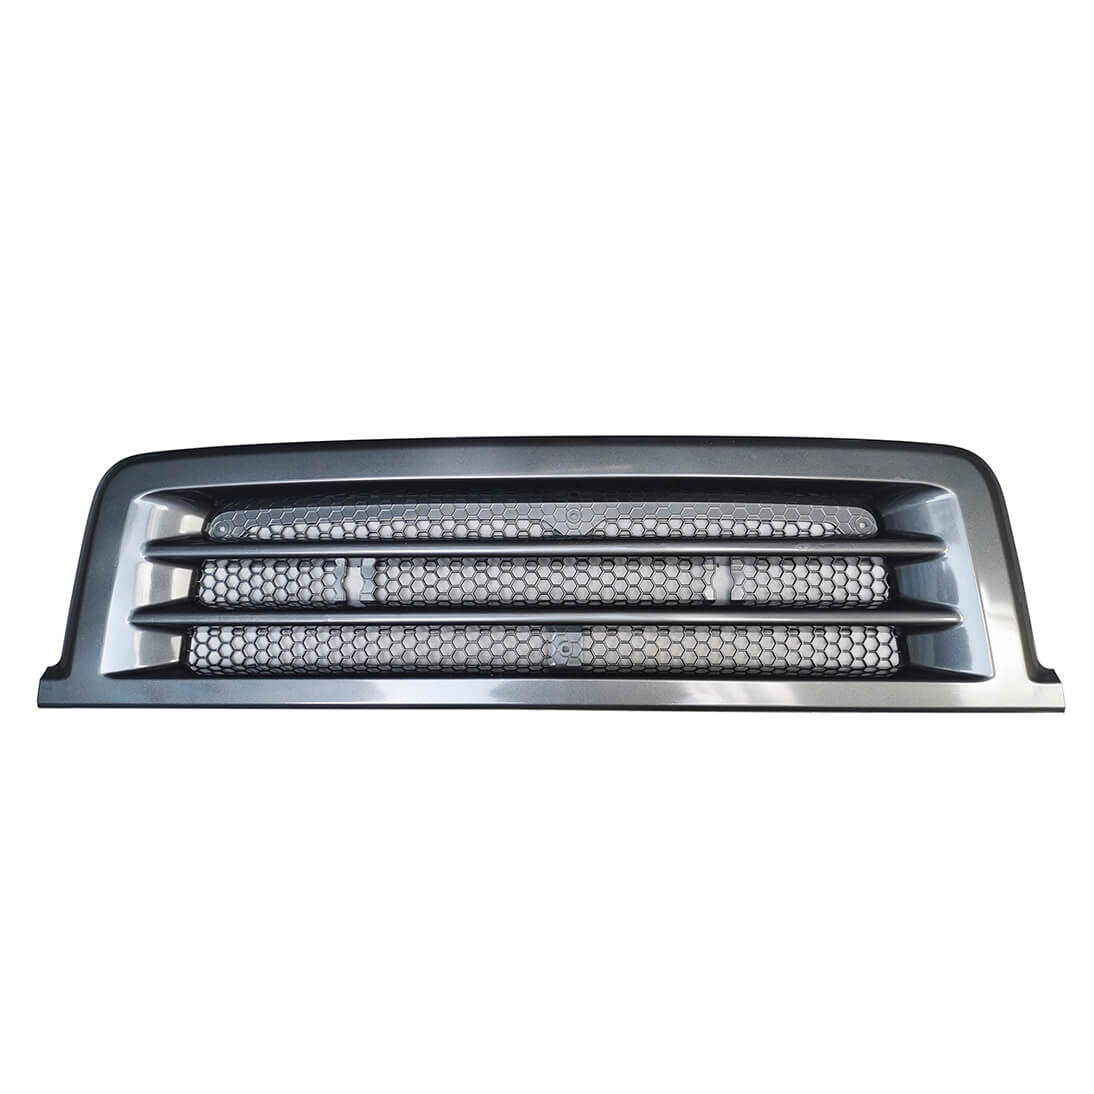 GRILLE RADIATOR FOR HYUNDAI TRUCK